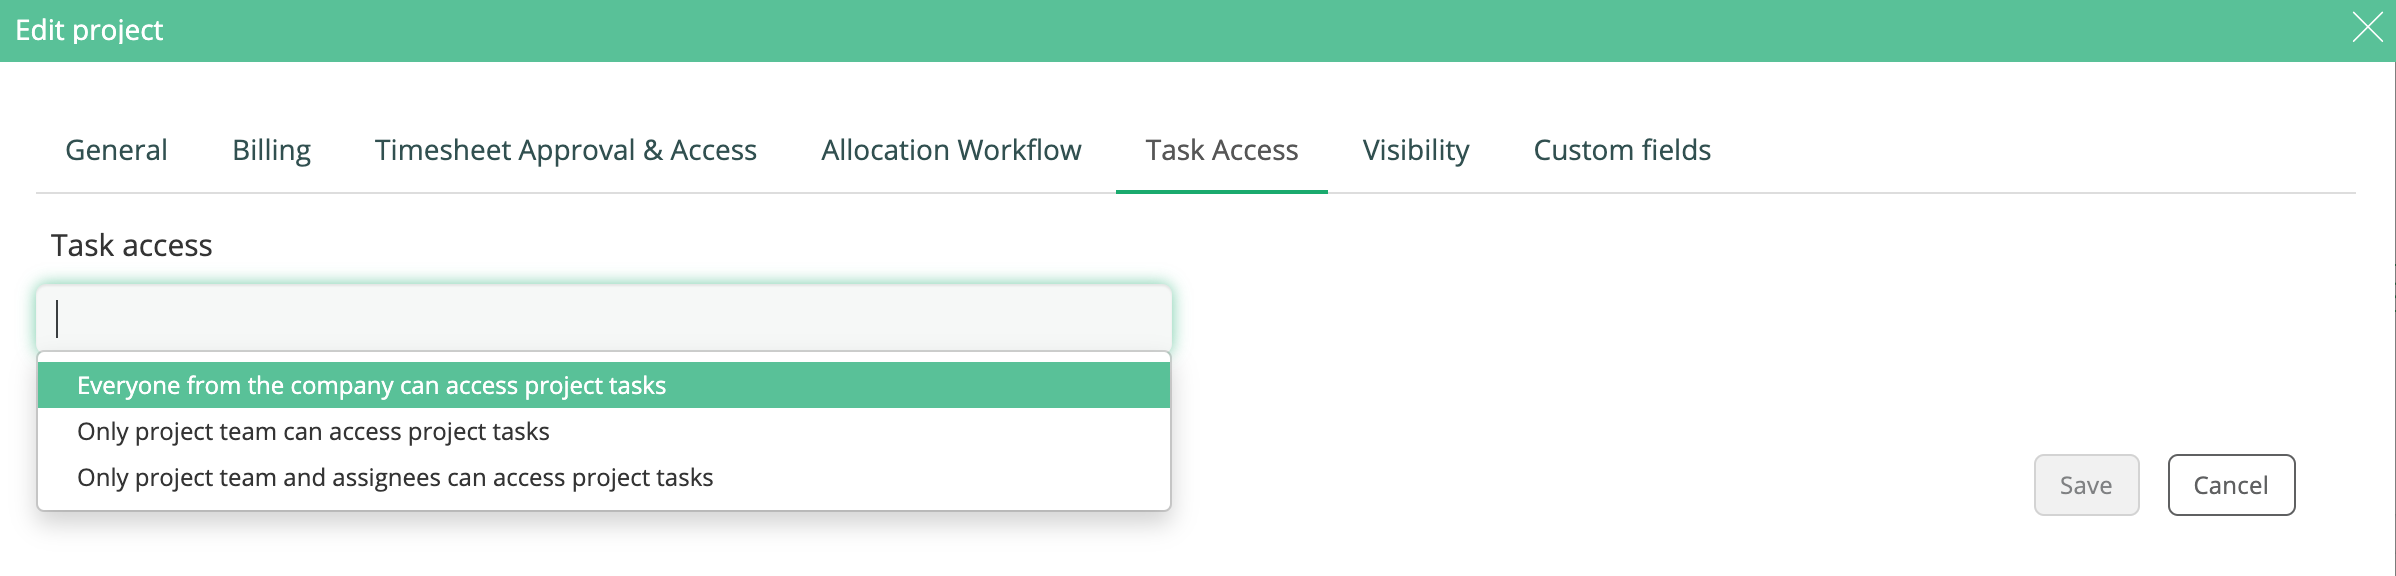 Settings who to have access to task on the project